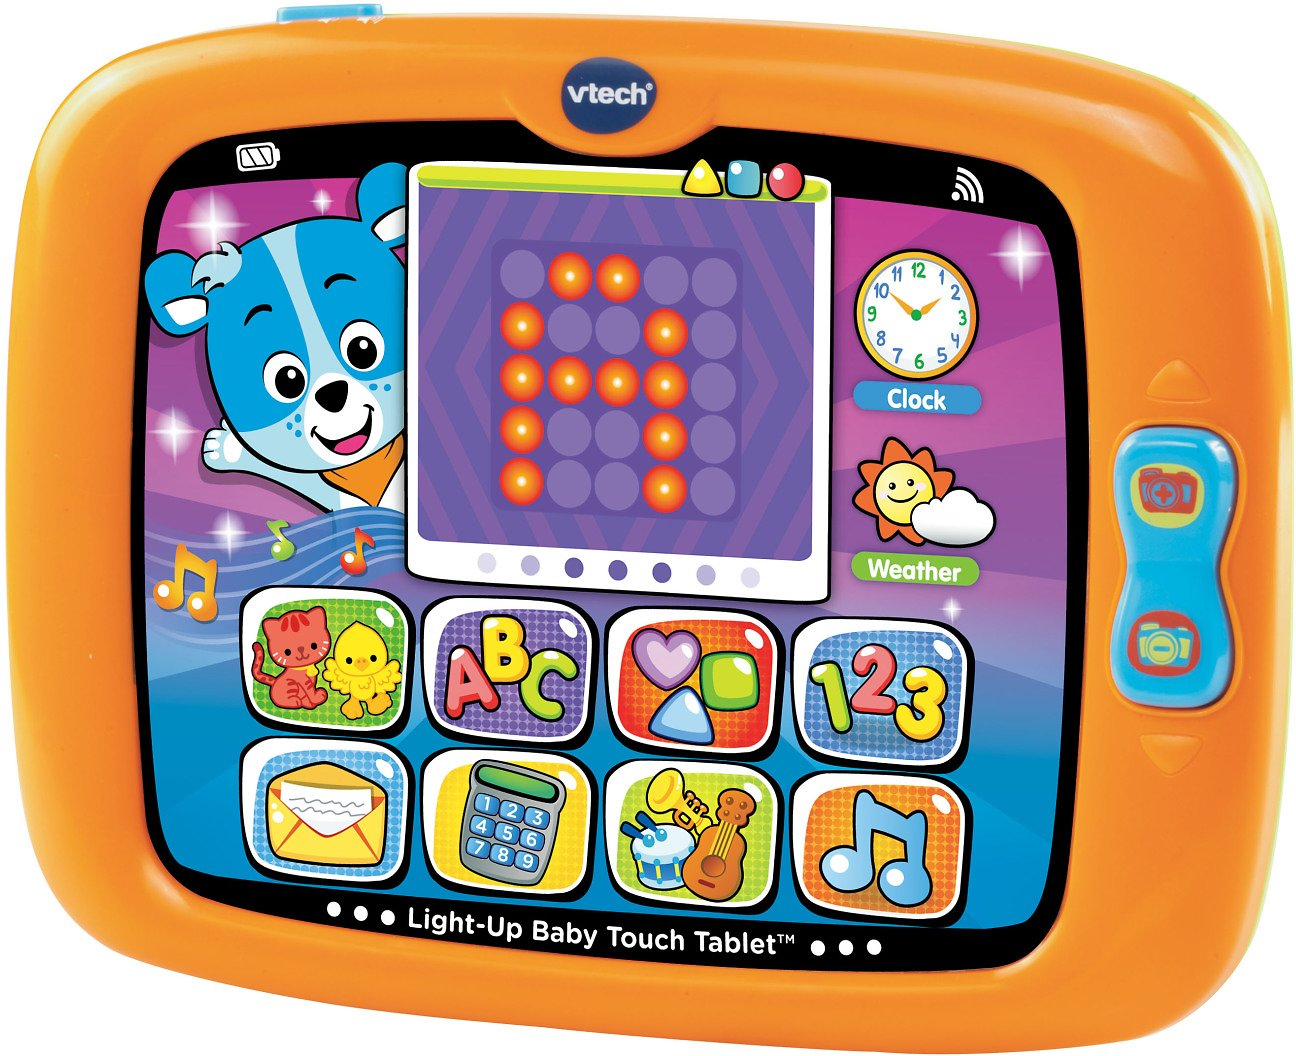 VTech Light-Up Baby Touch Tablet